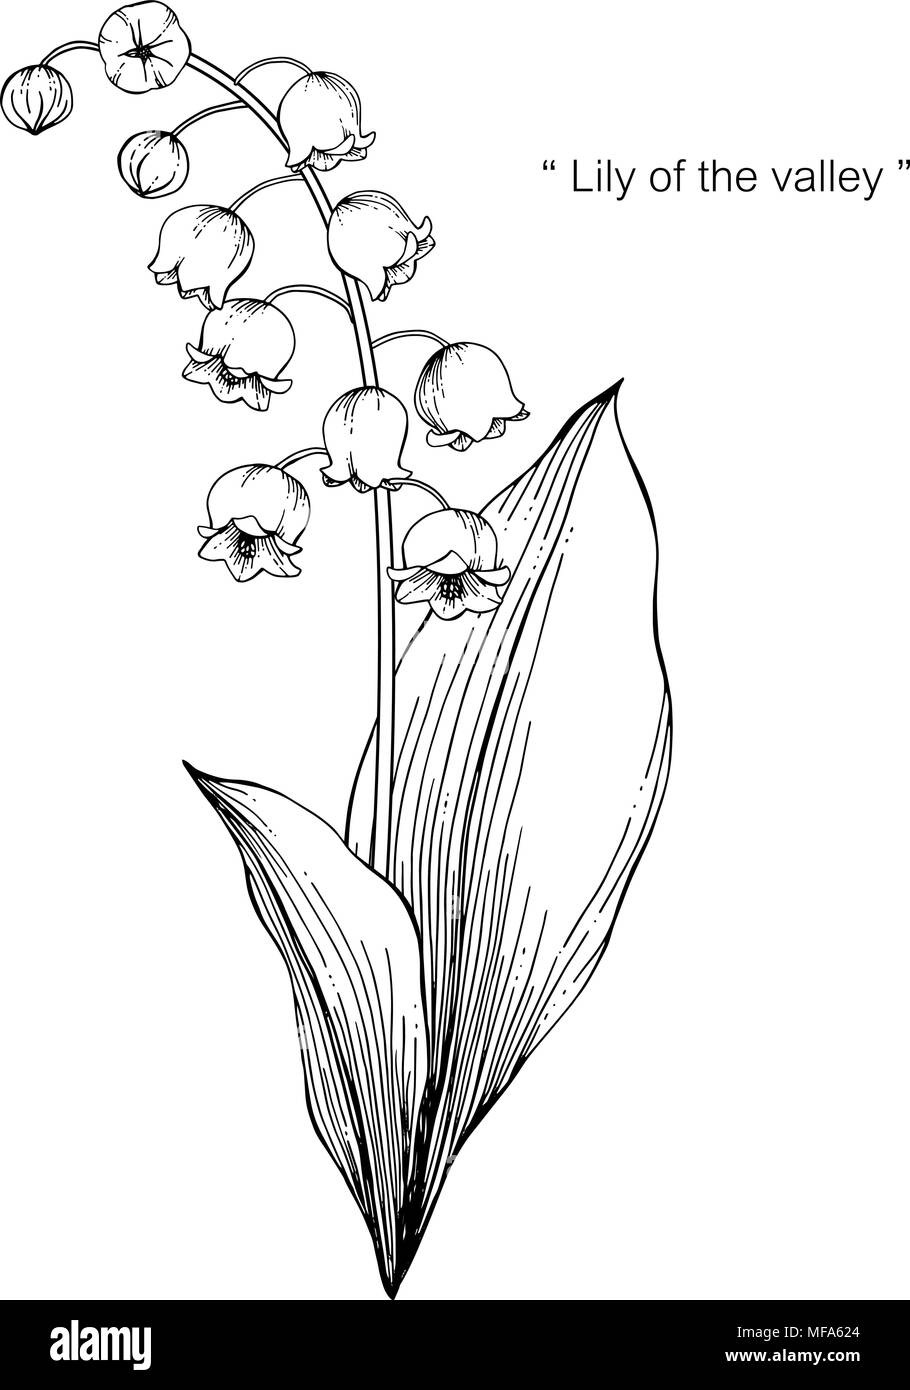 Lily of the valley flower drawing illustration black and white with lily of the valley flower drawing illustration black and white with line art on white backgrounds mightylinksfo